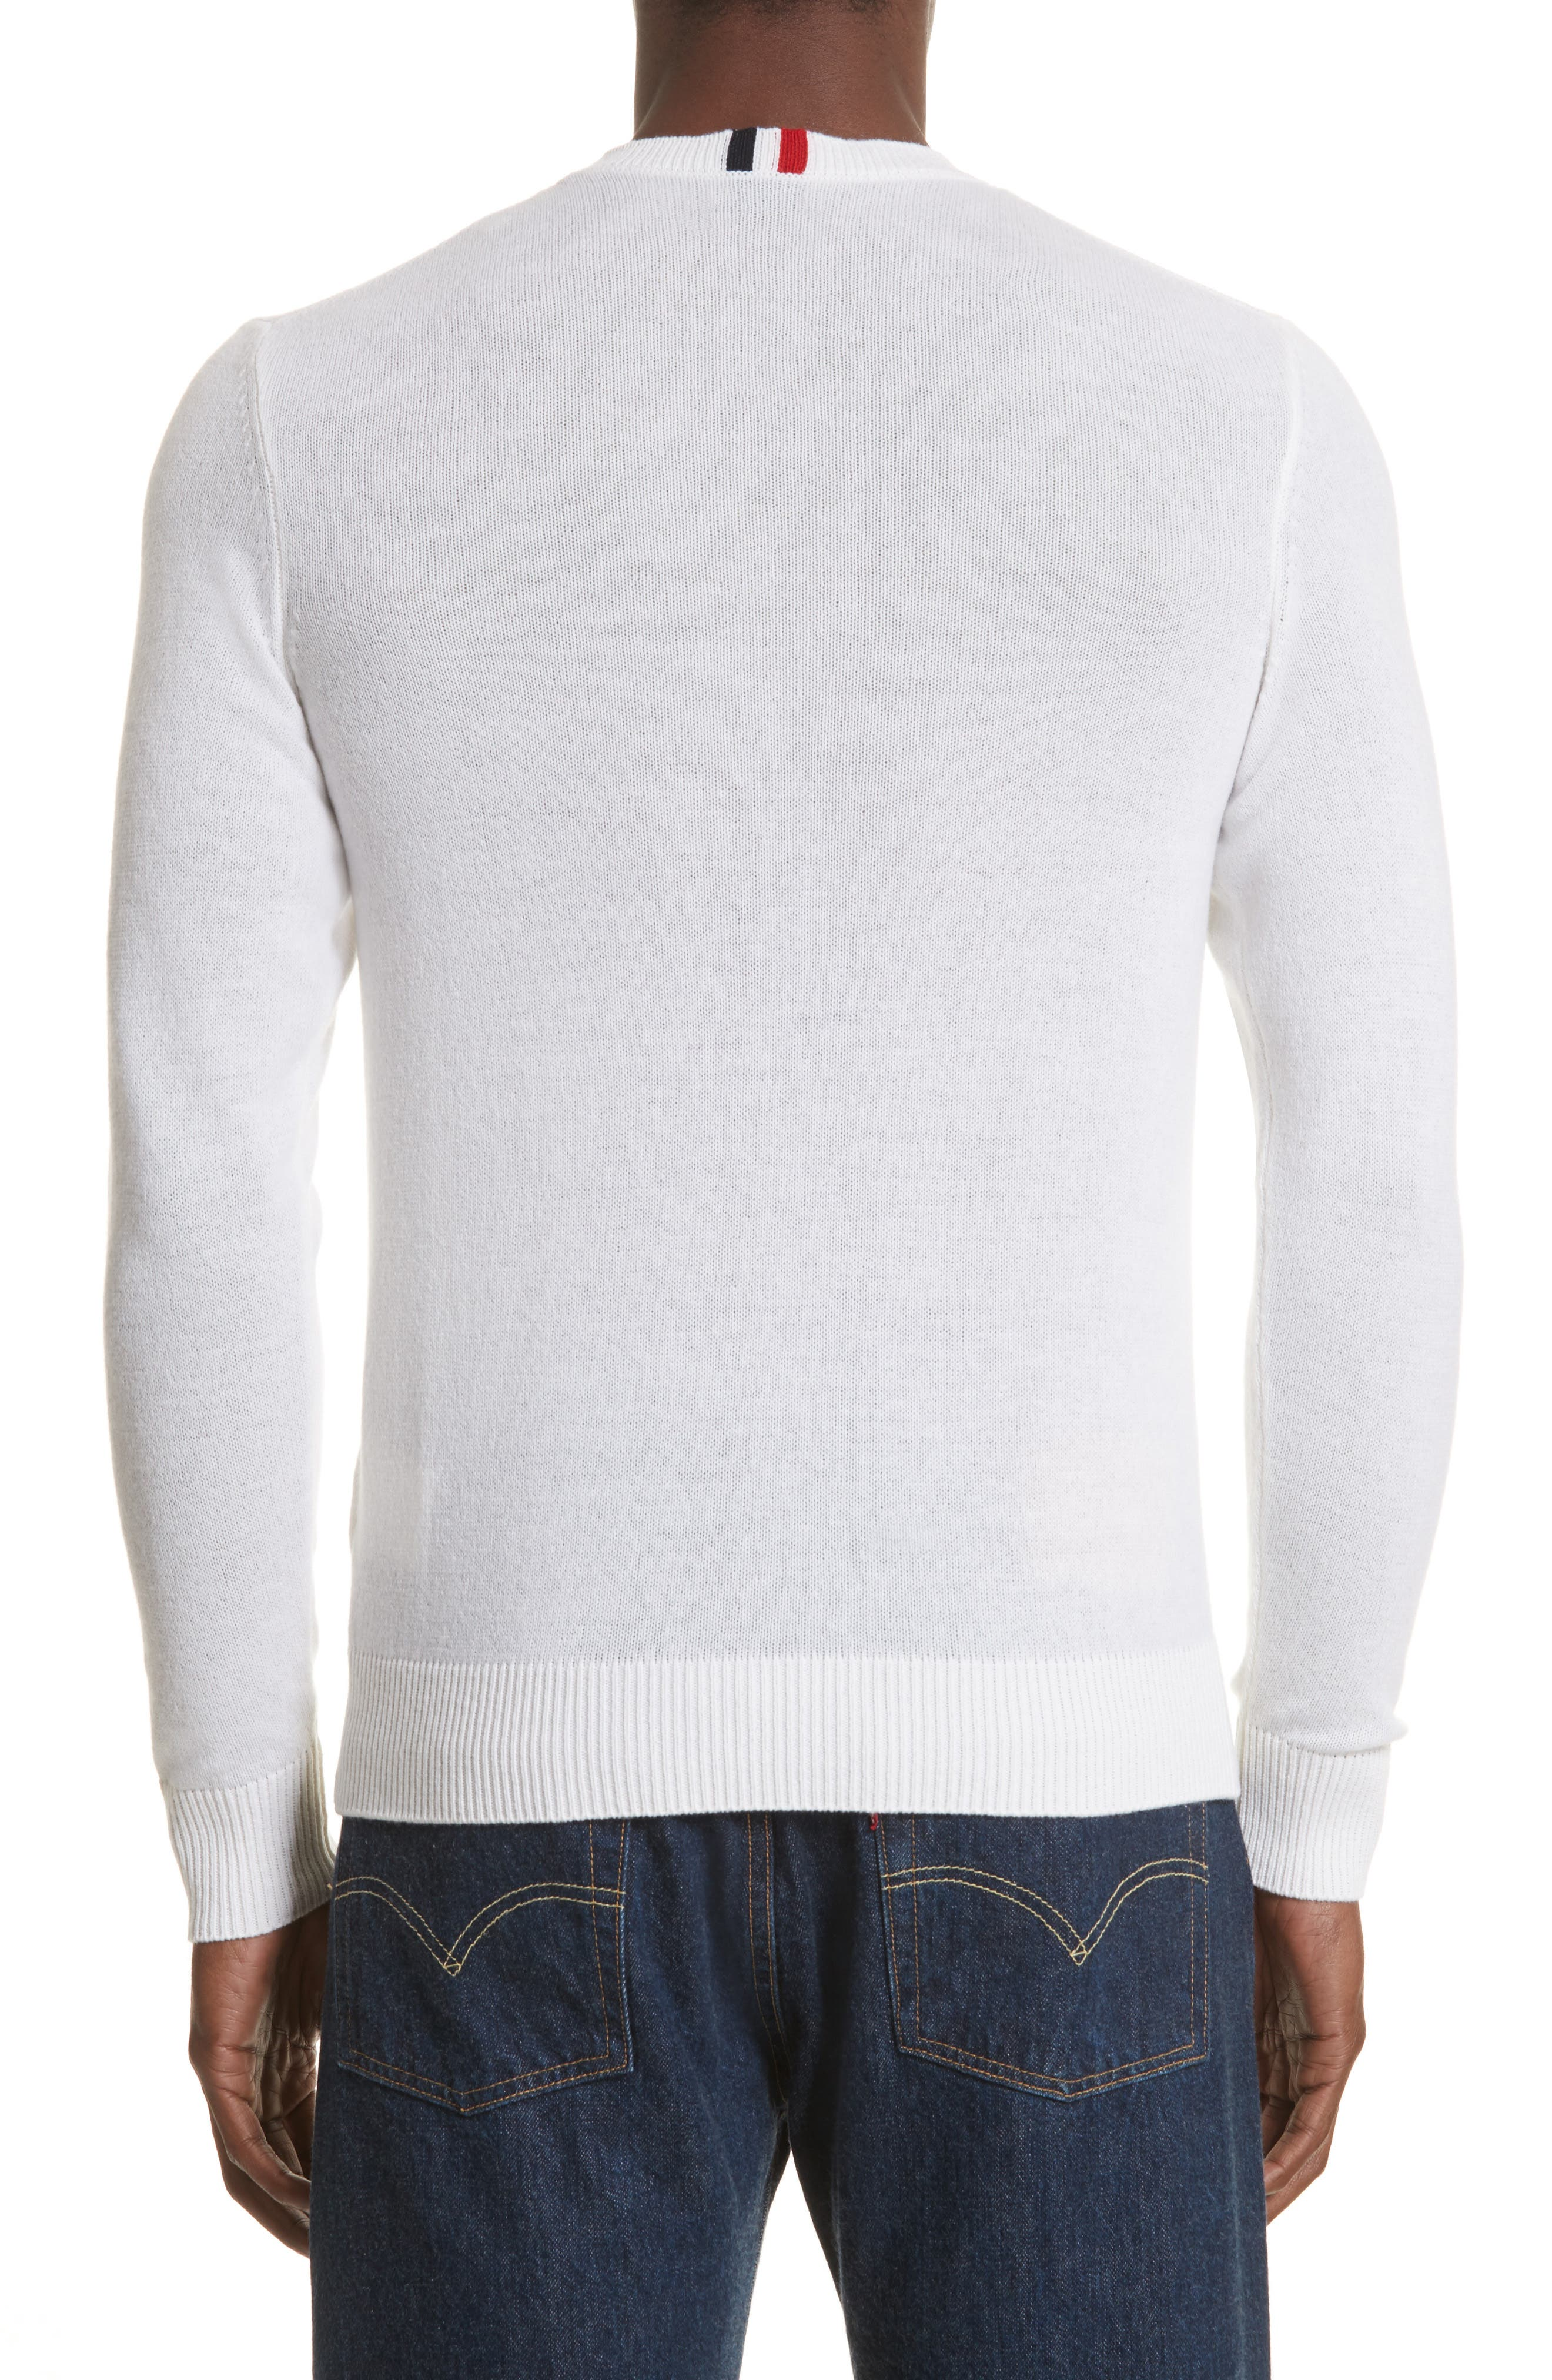 Cashmere Crewneck Sweater,                             Alternate thumbnail 2, color,                             100